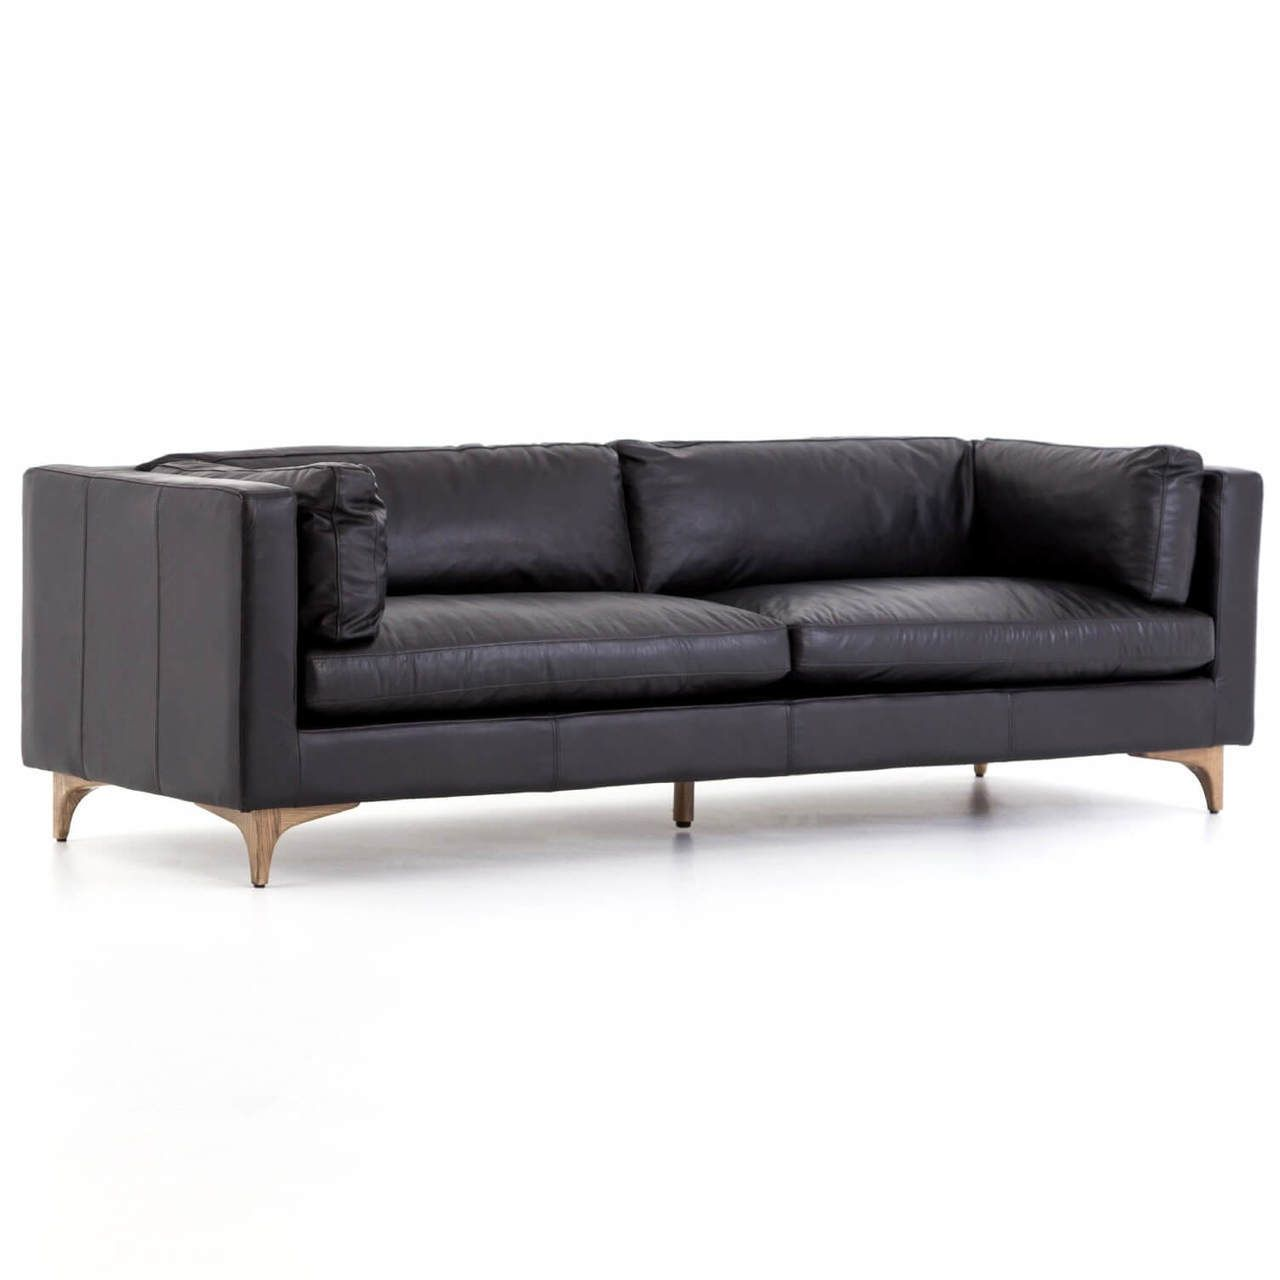 Beckwith Mid Century Modern Black Leather Cushion Back Sofa 94